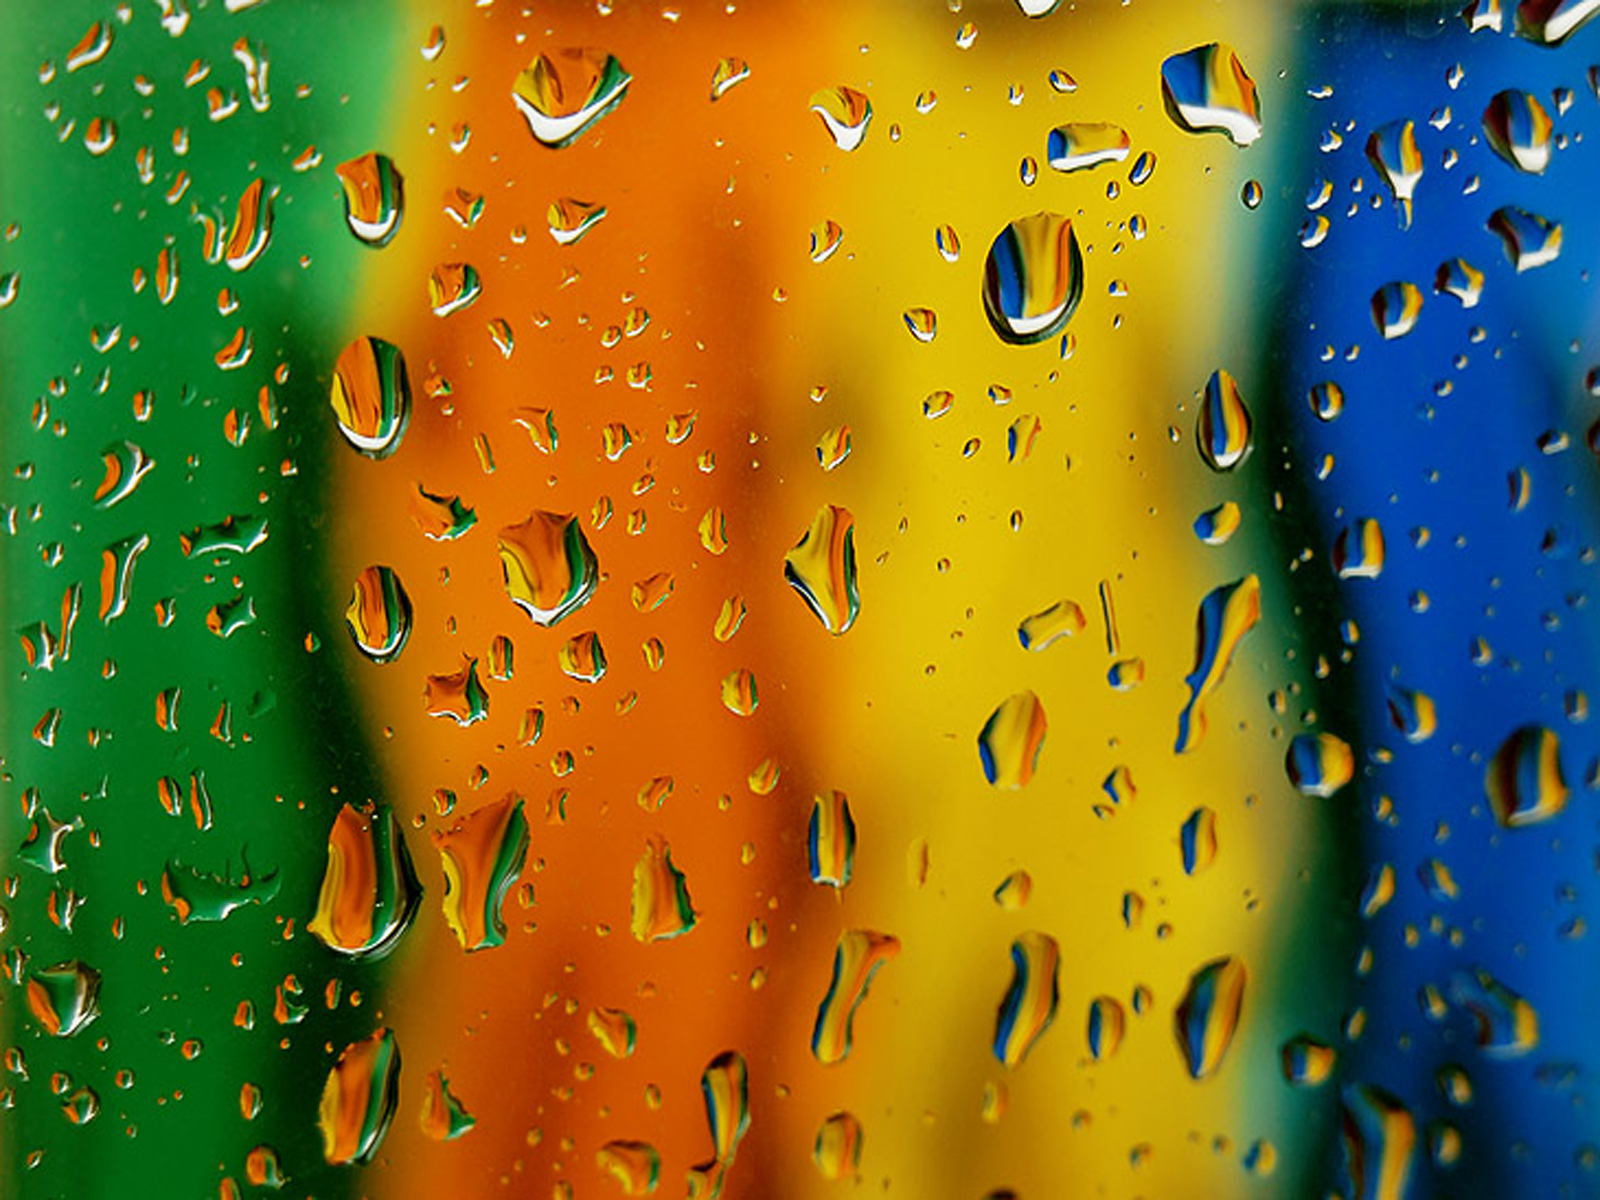 1600x1200 colorful drops desktop pc and mac wallpaper - Desktop wallpaper 1600x1200 ...